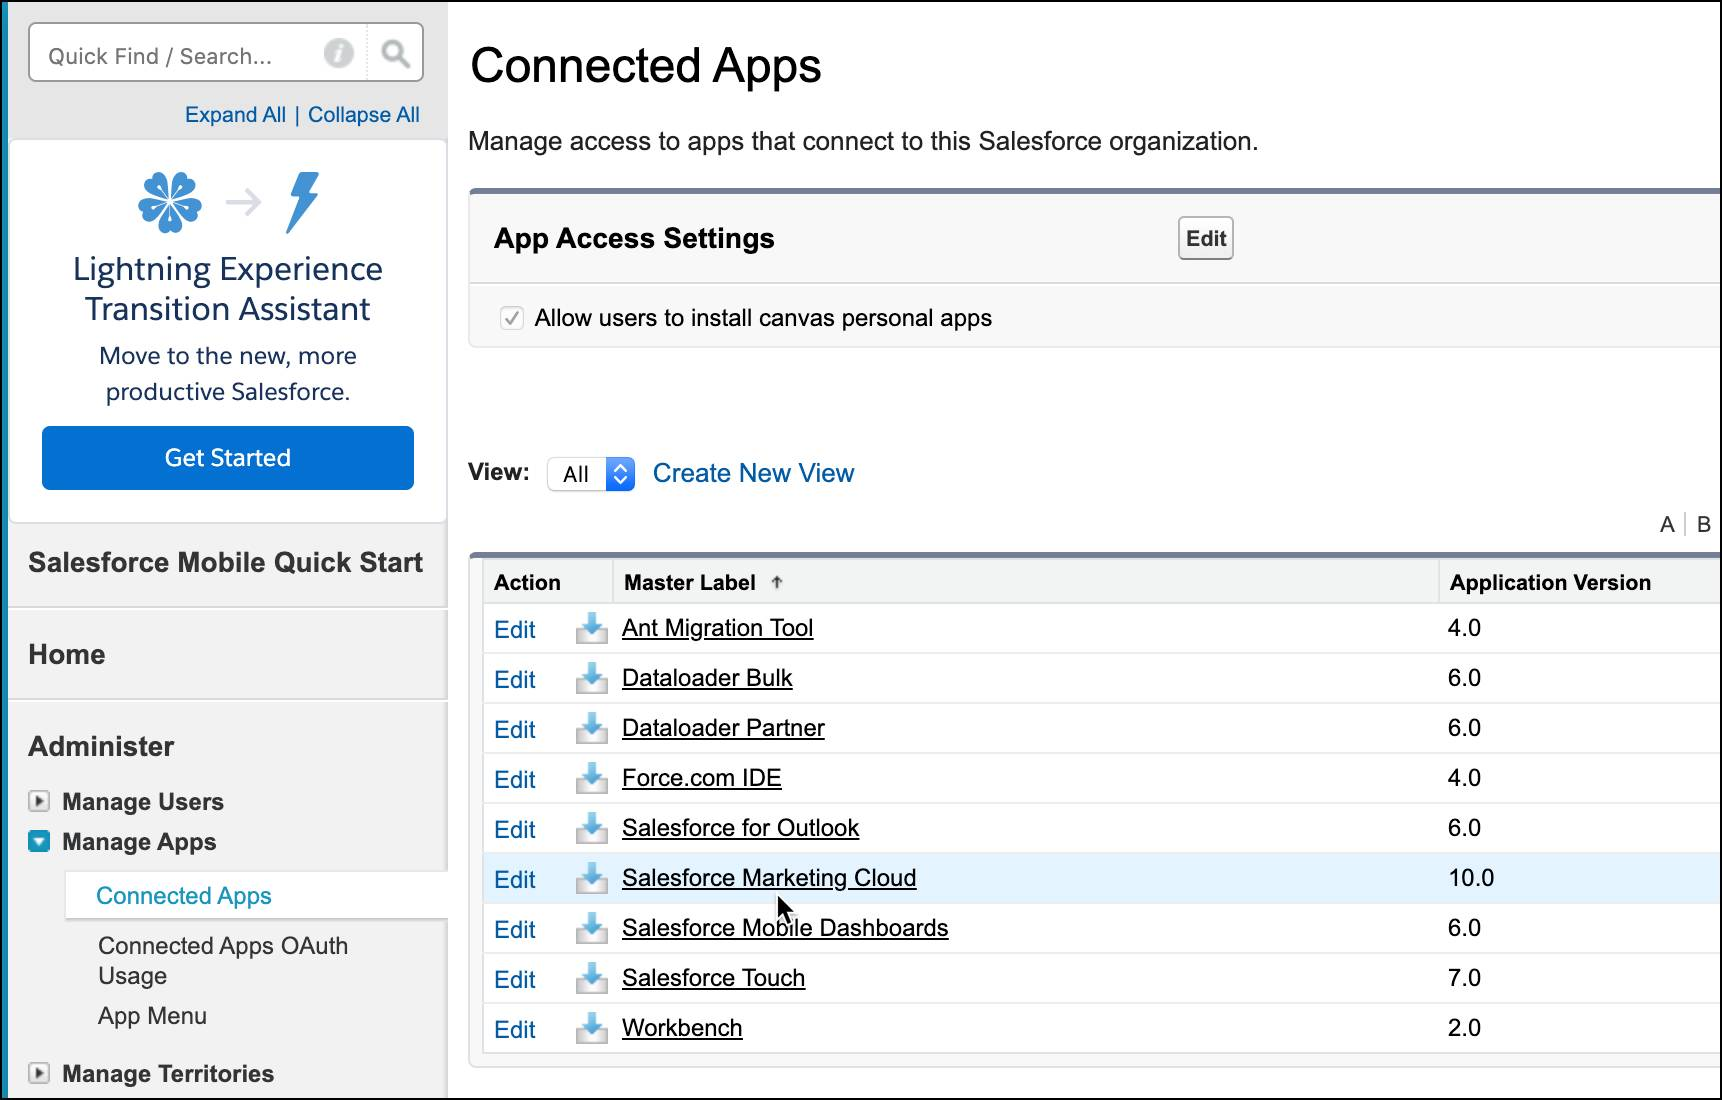 Connected Apps screen with Salesforce Marketing Cloud selected.